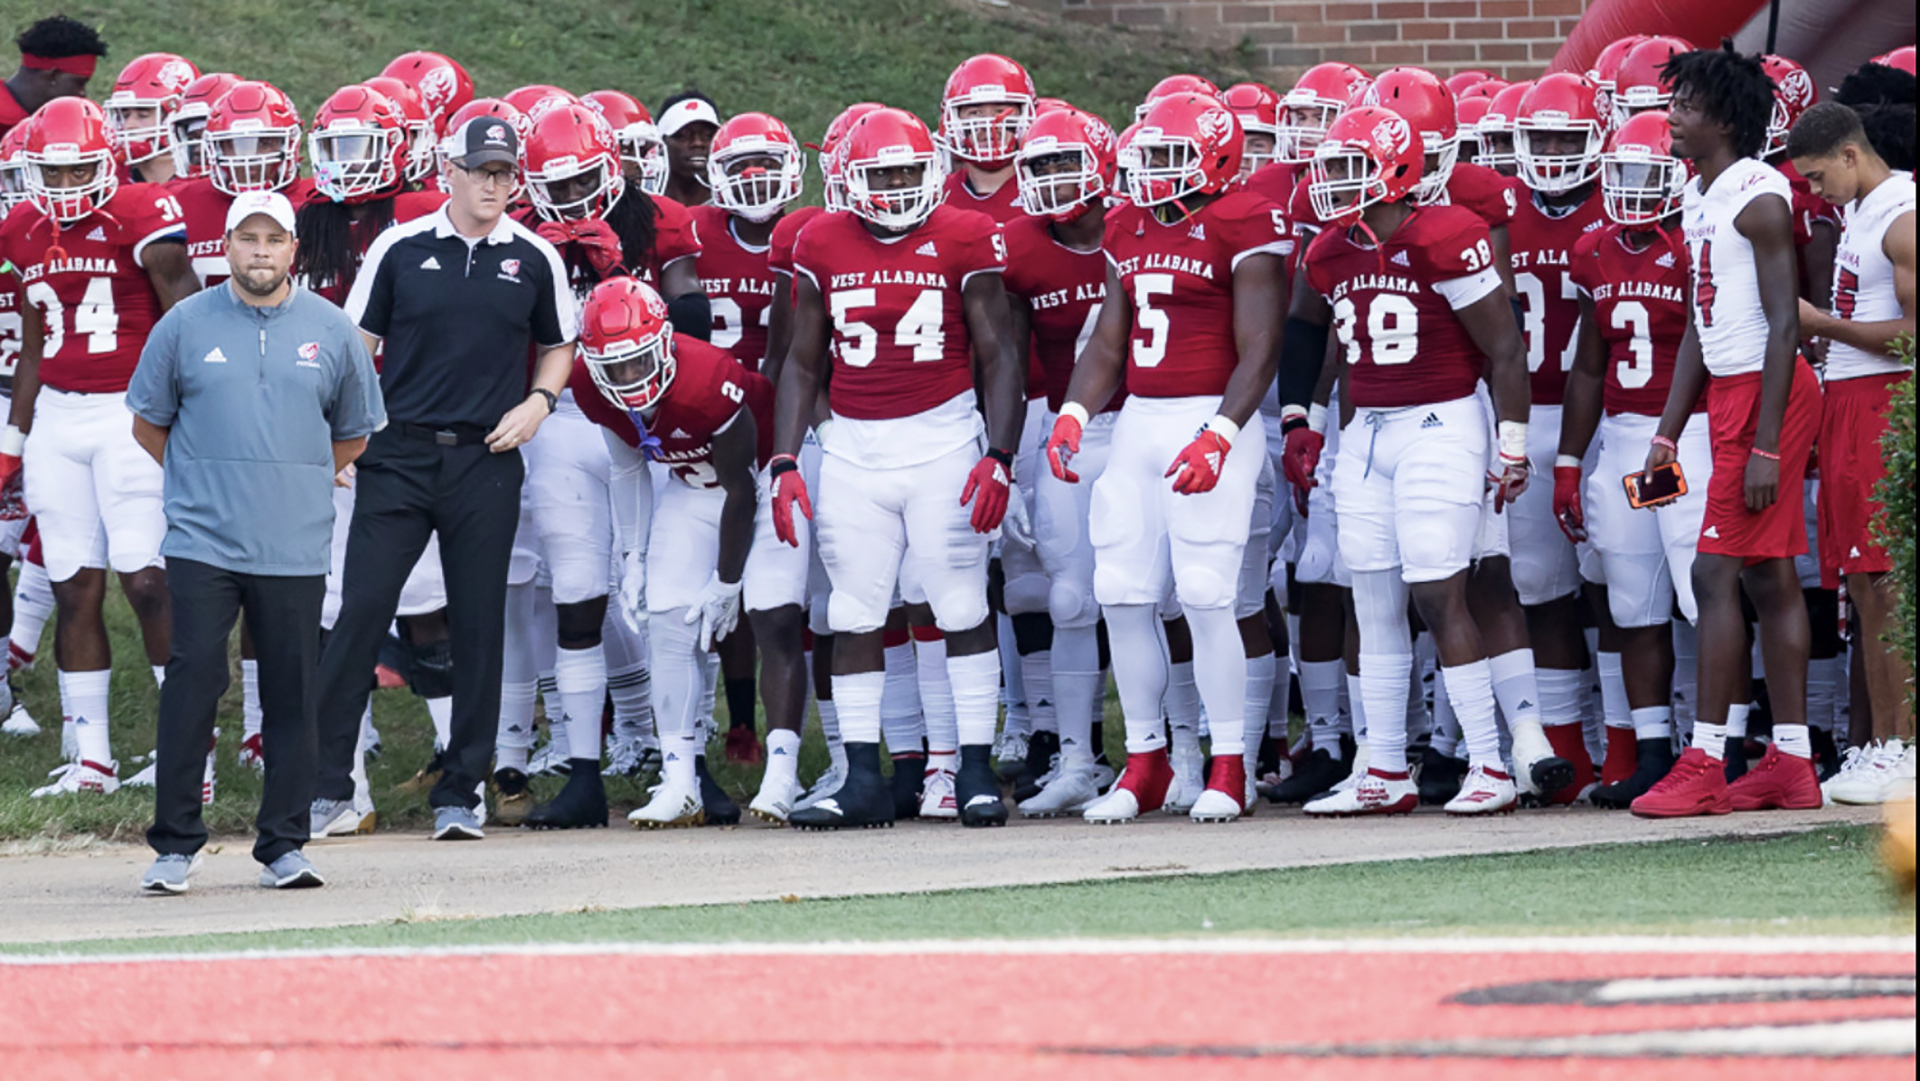 2020 Uwa Football Schedule Features Six Home Games University Of West Alabama Athletics